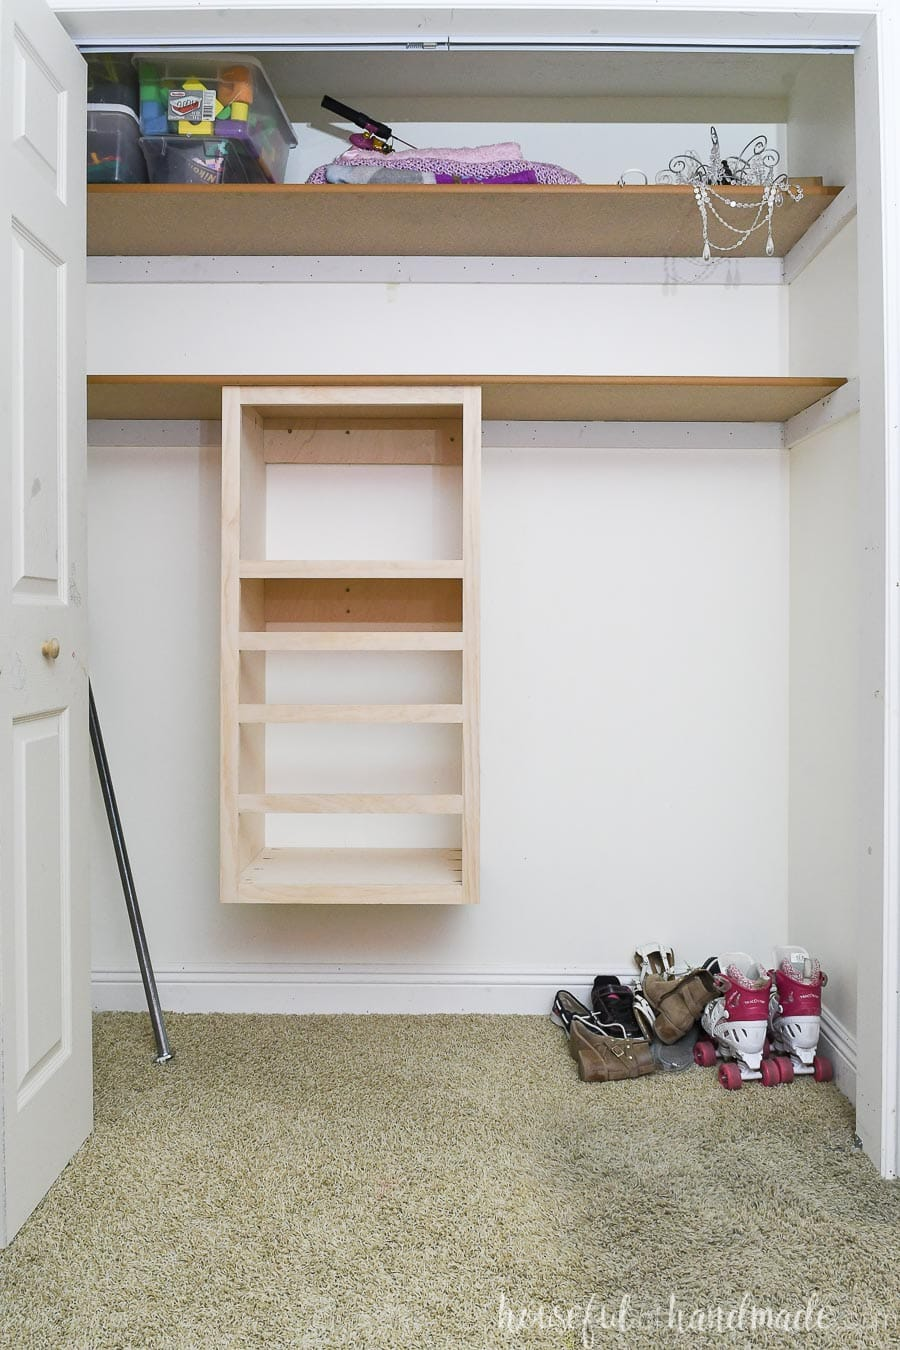 Kids closet cleared out of clothes with a DIY closet organizer added below the shelf.